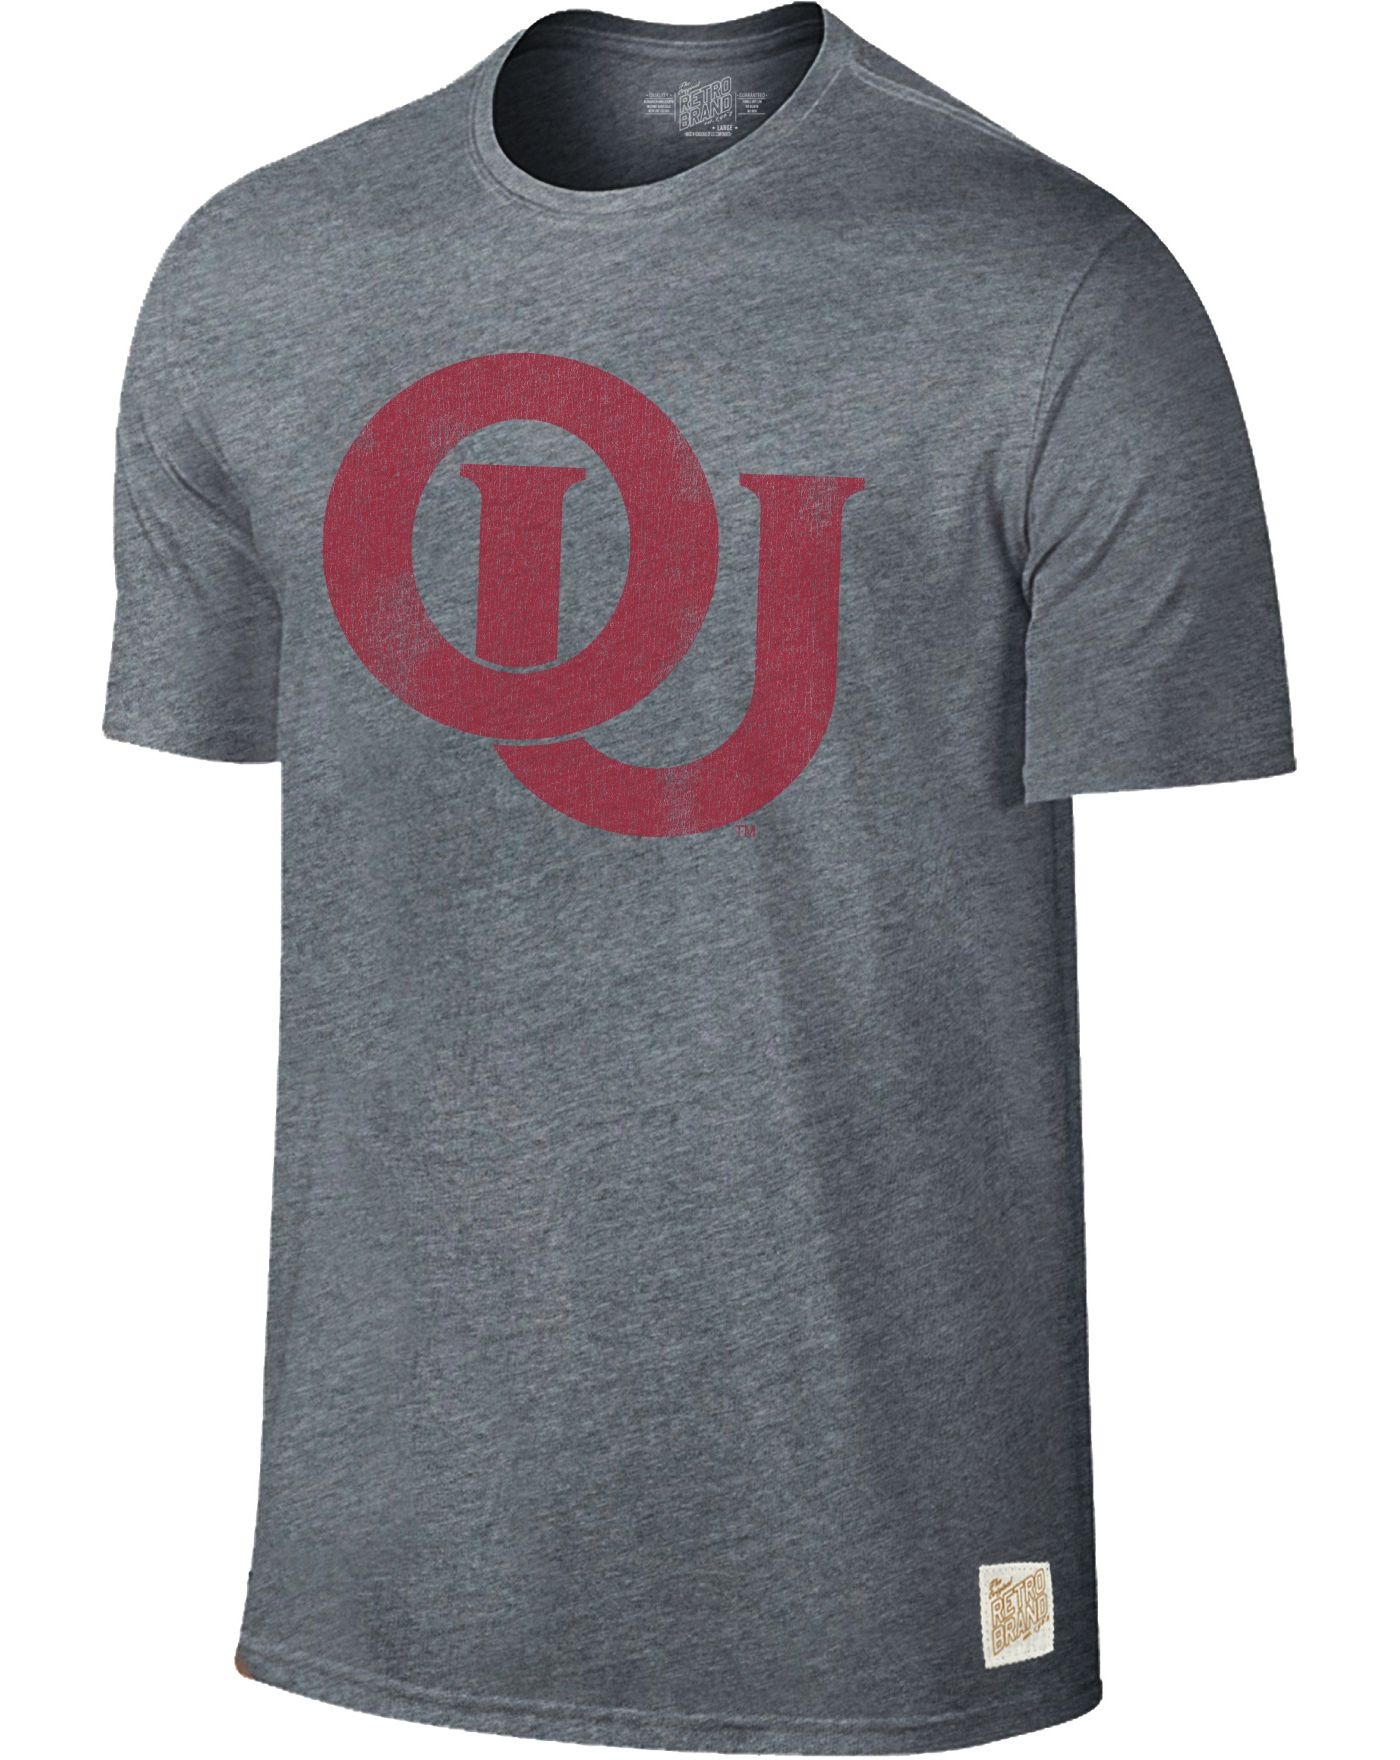 Original Retro Brand Men's Oklahoma Sooners Grey Retro Tri-Blend T-Shirt